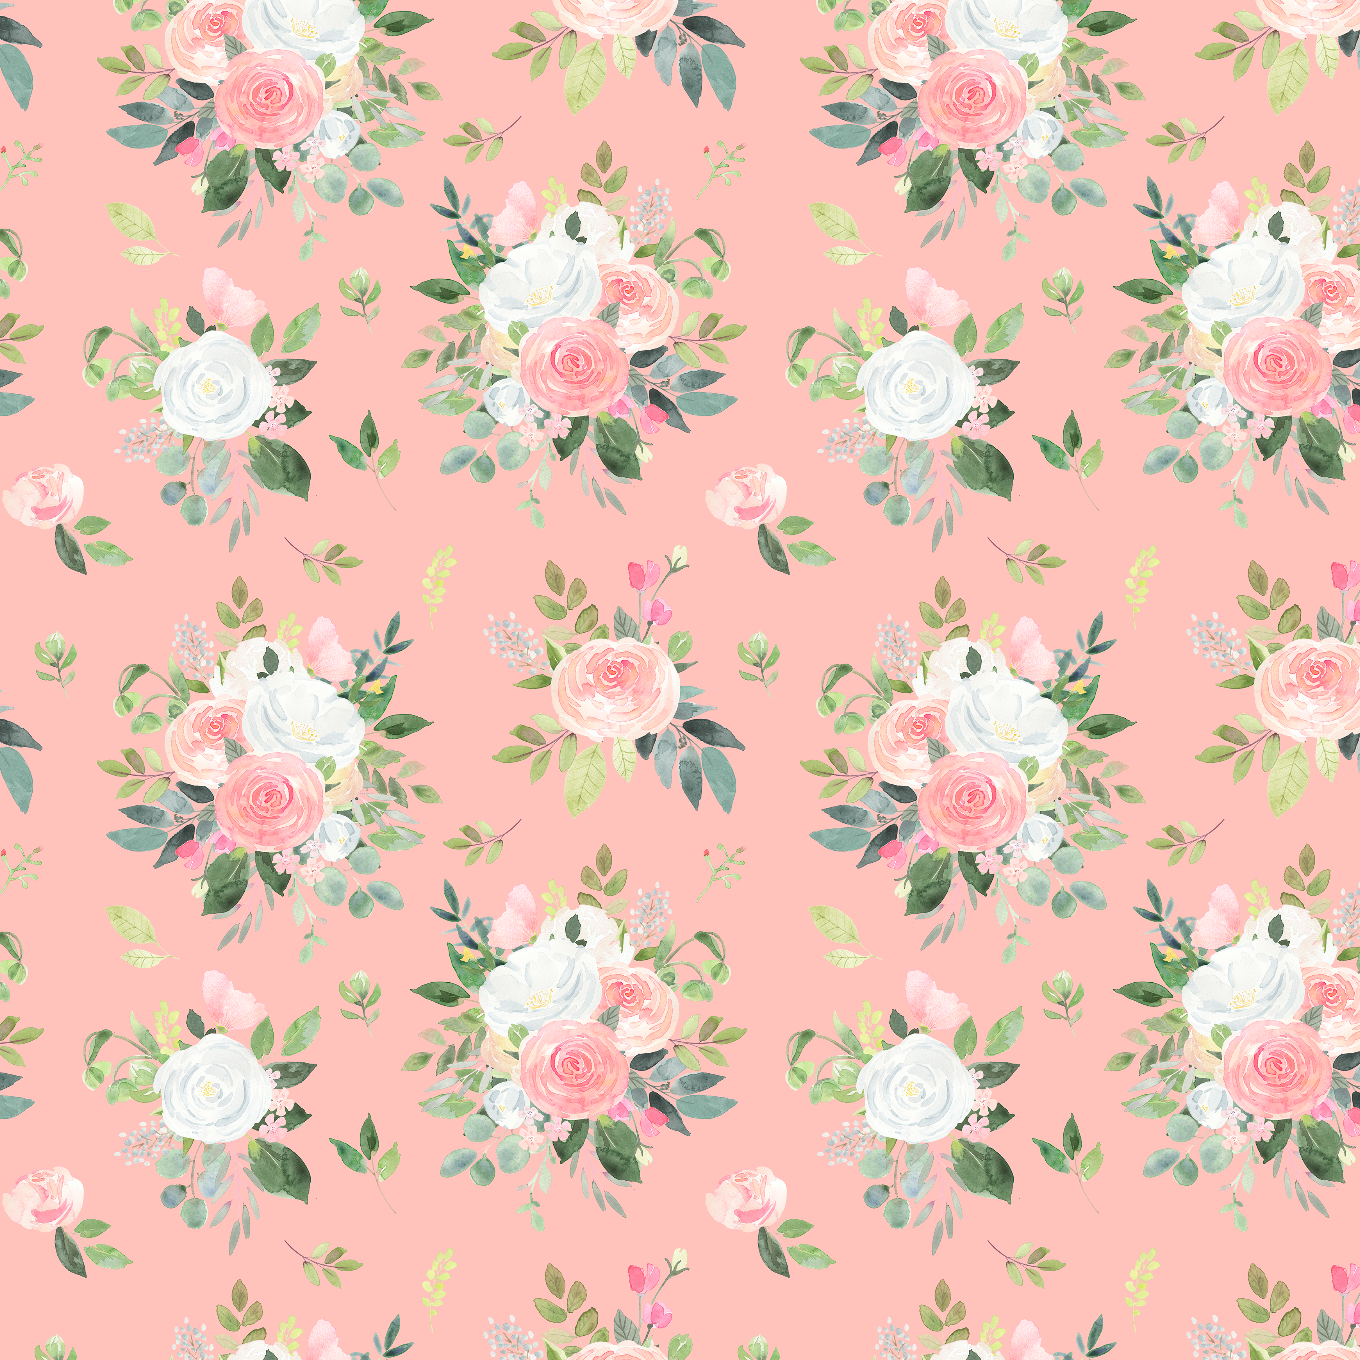 PRE ORDER Winter Blooms Small Pink - Digital Fabric Print